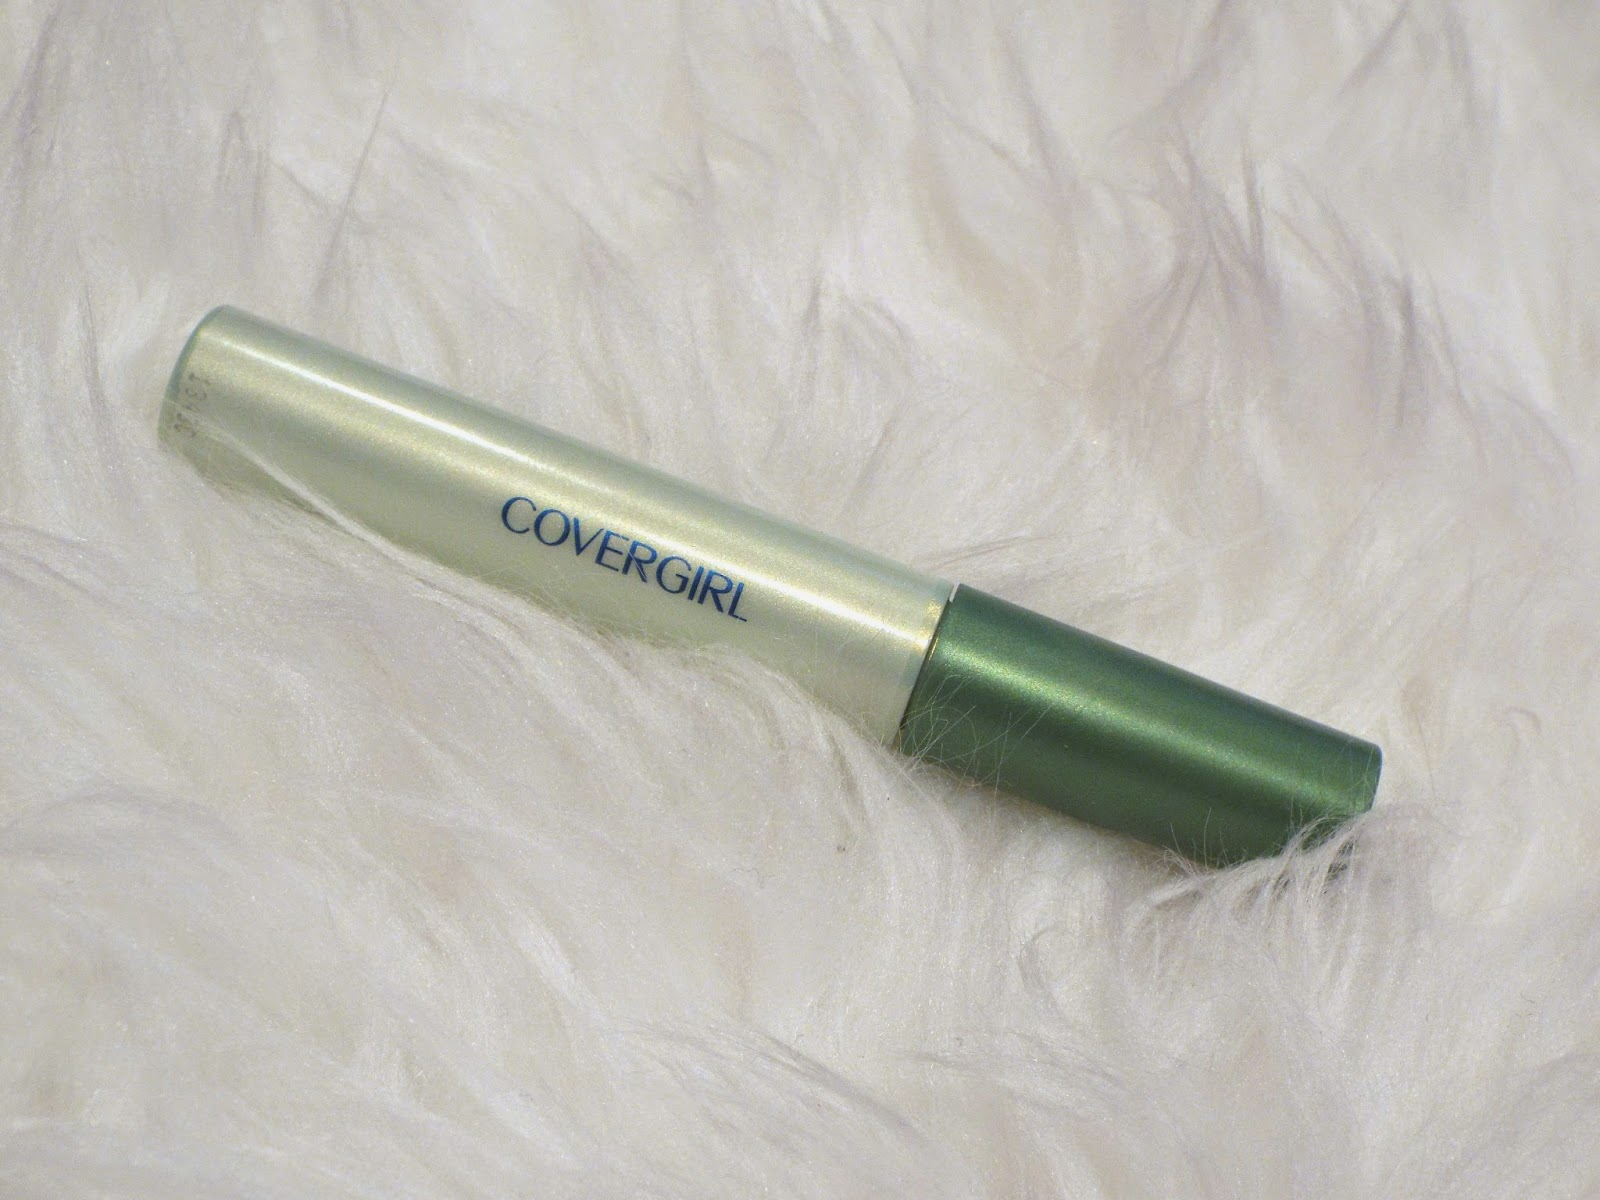 Covergirl Nature Luxe Waterproof msacara, mascara, waterproof mascara